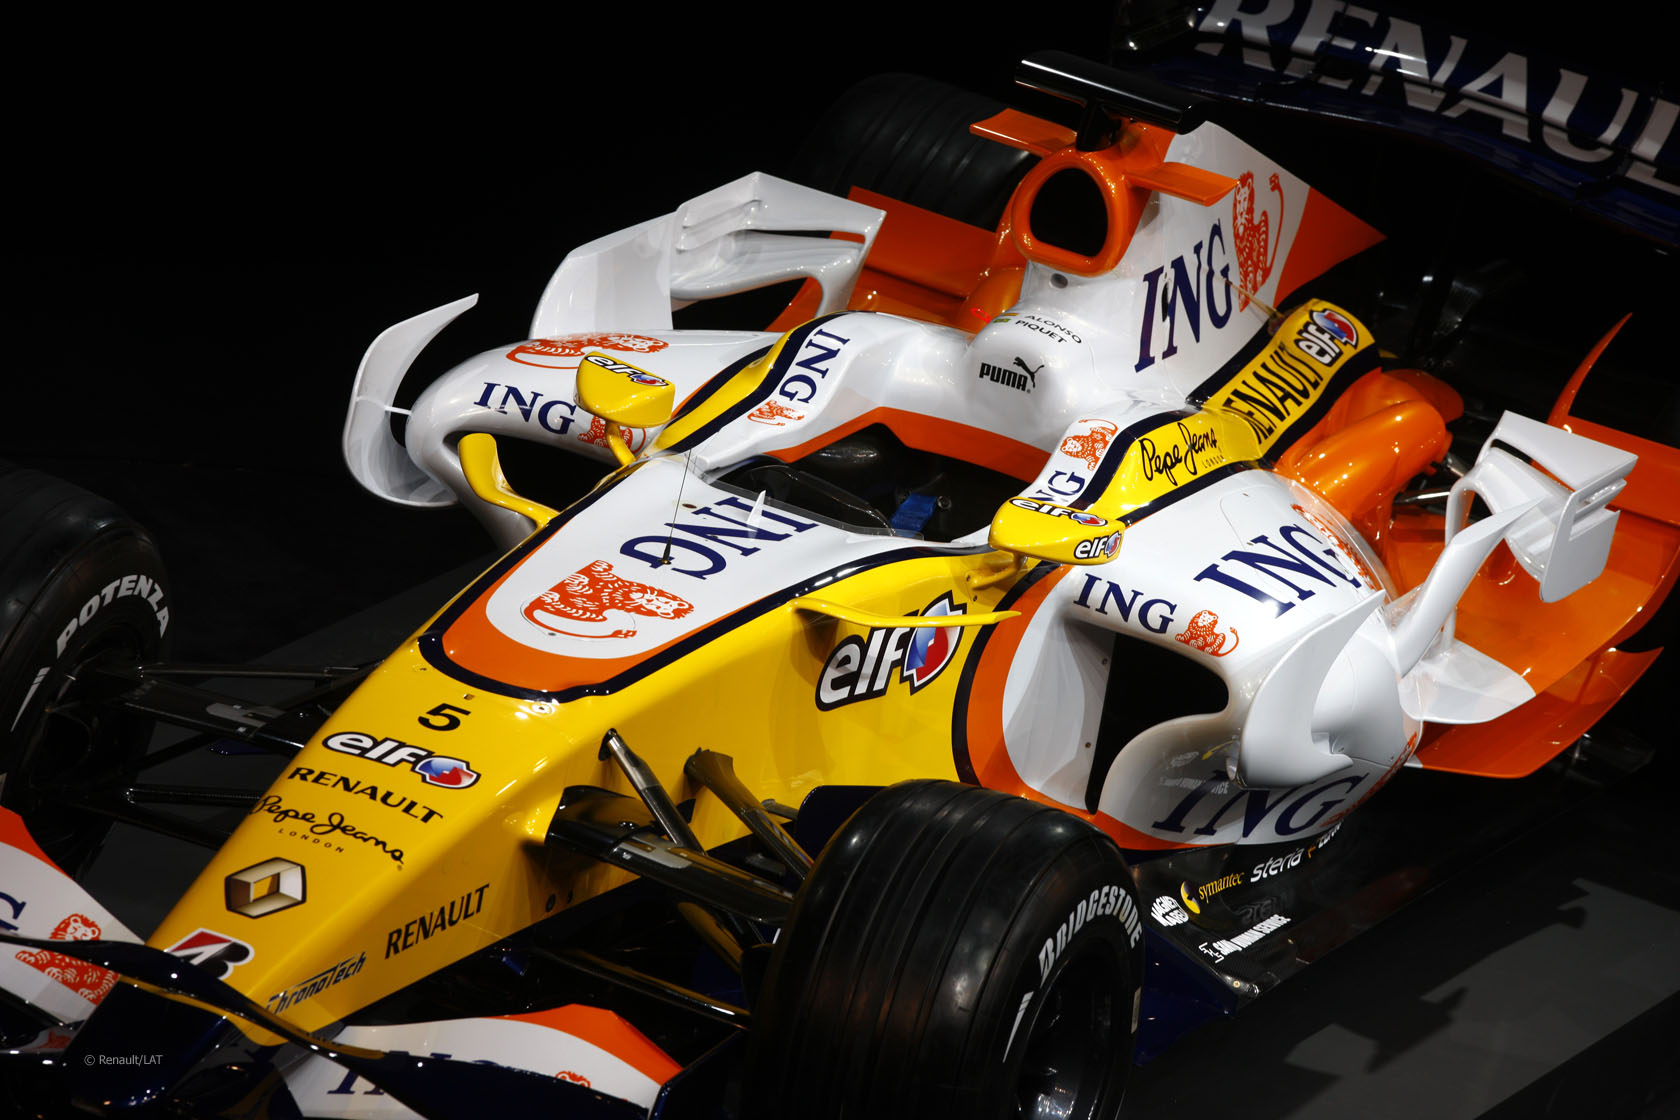 Renault R28 launch, 2008